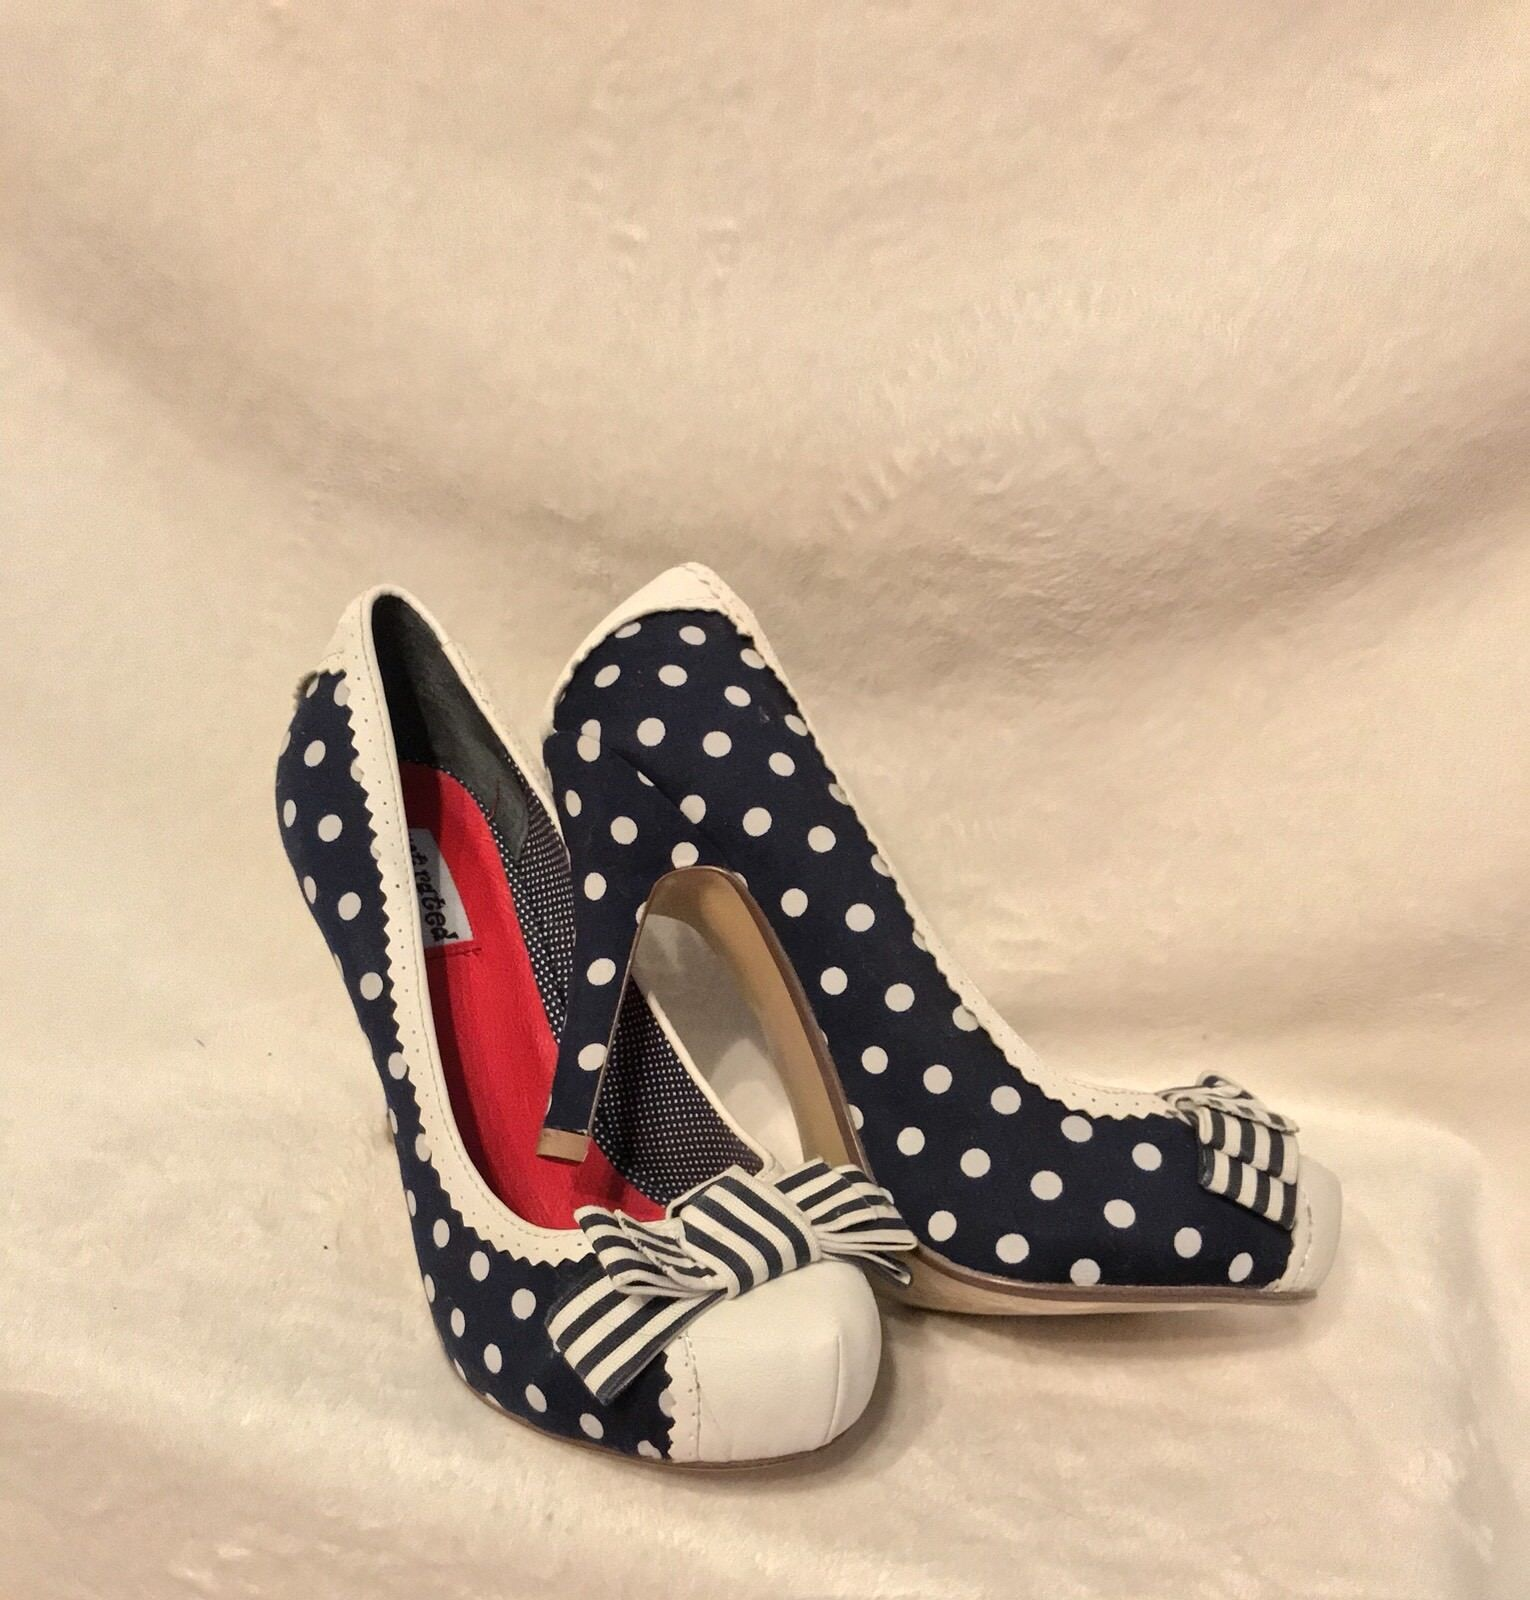 NEW NOT RATED Blau And WEISS Polka Dot Platform Pumps Schuhes, 8